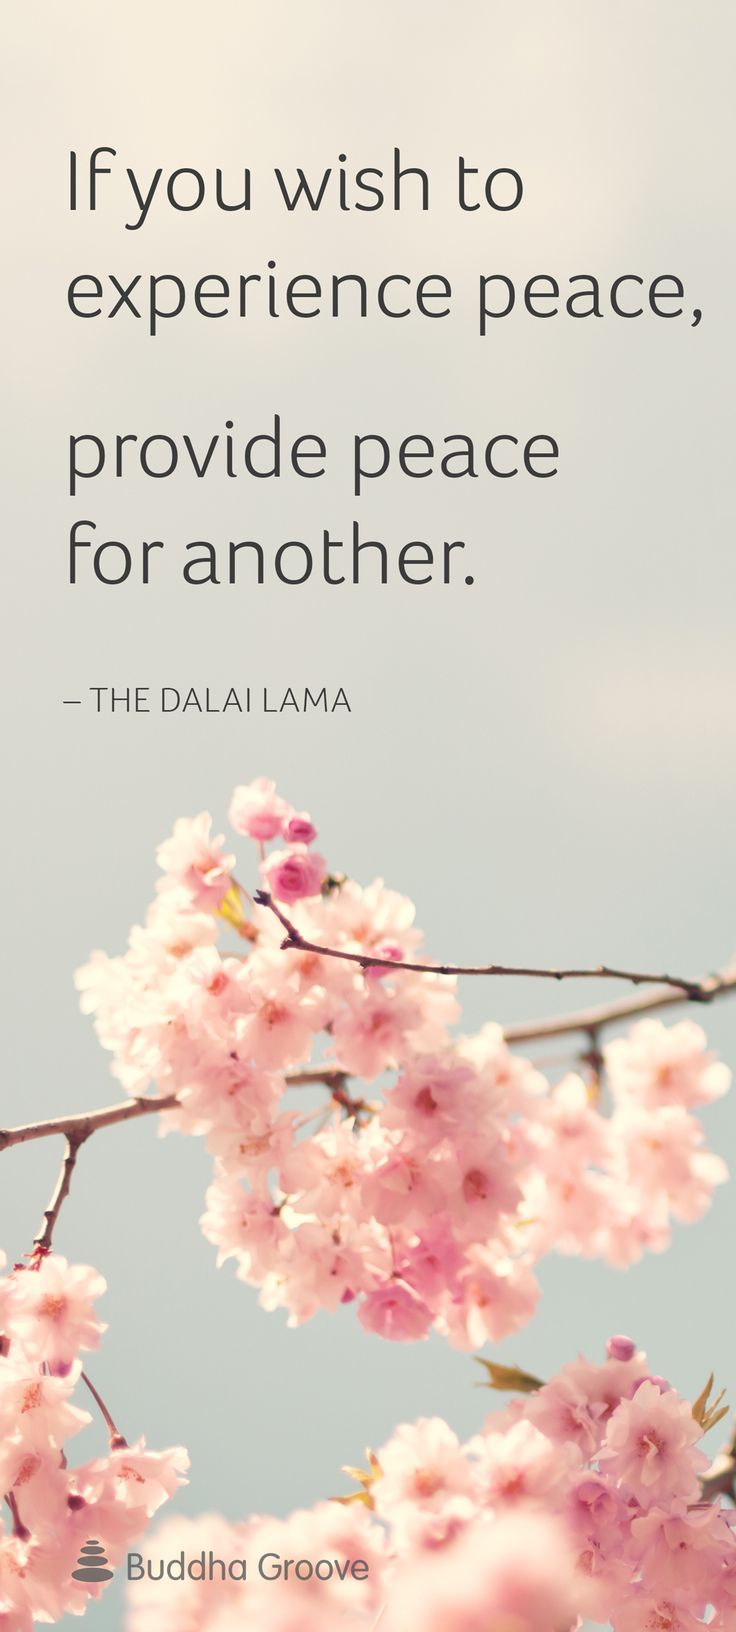 """""""If you wish to experience peace, provide peace for another."""" -The Dalai Lama"""